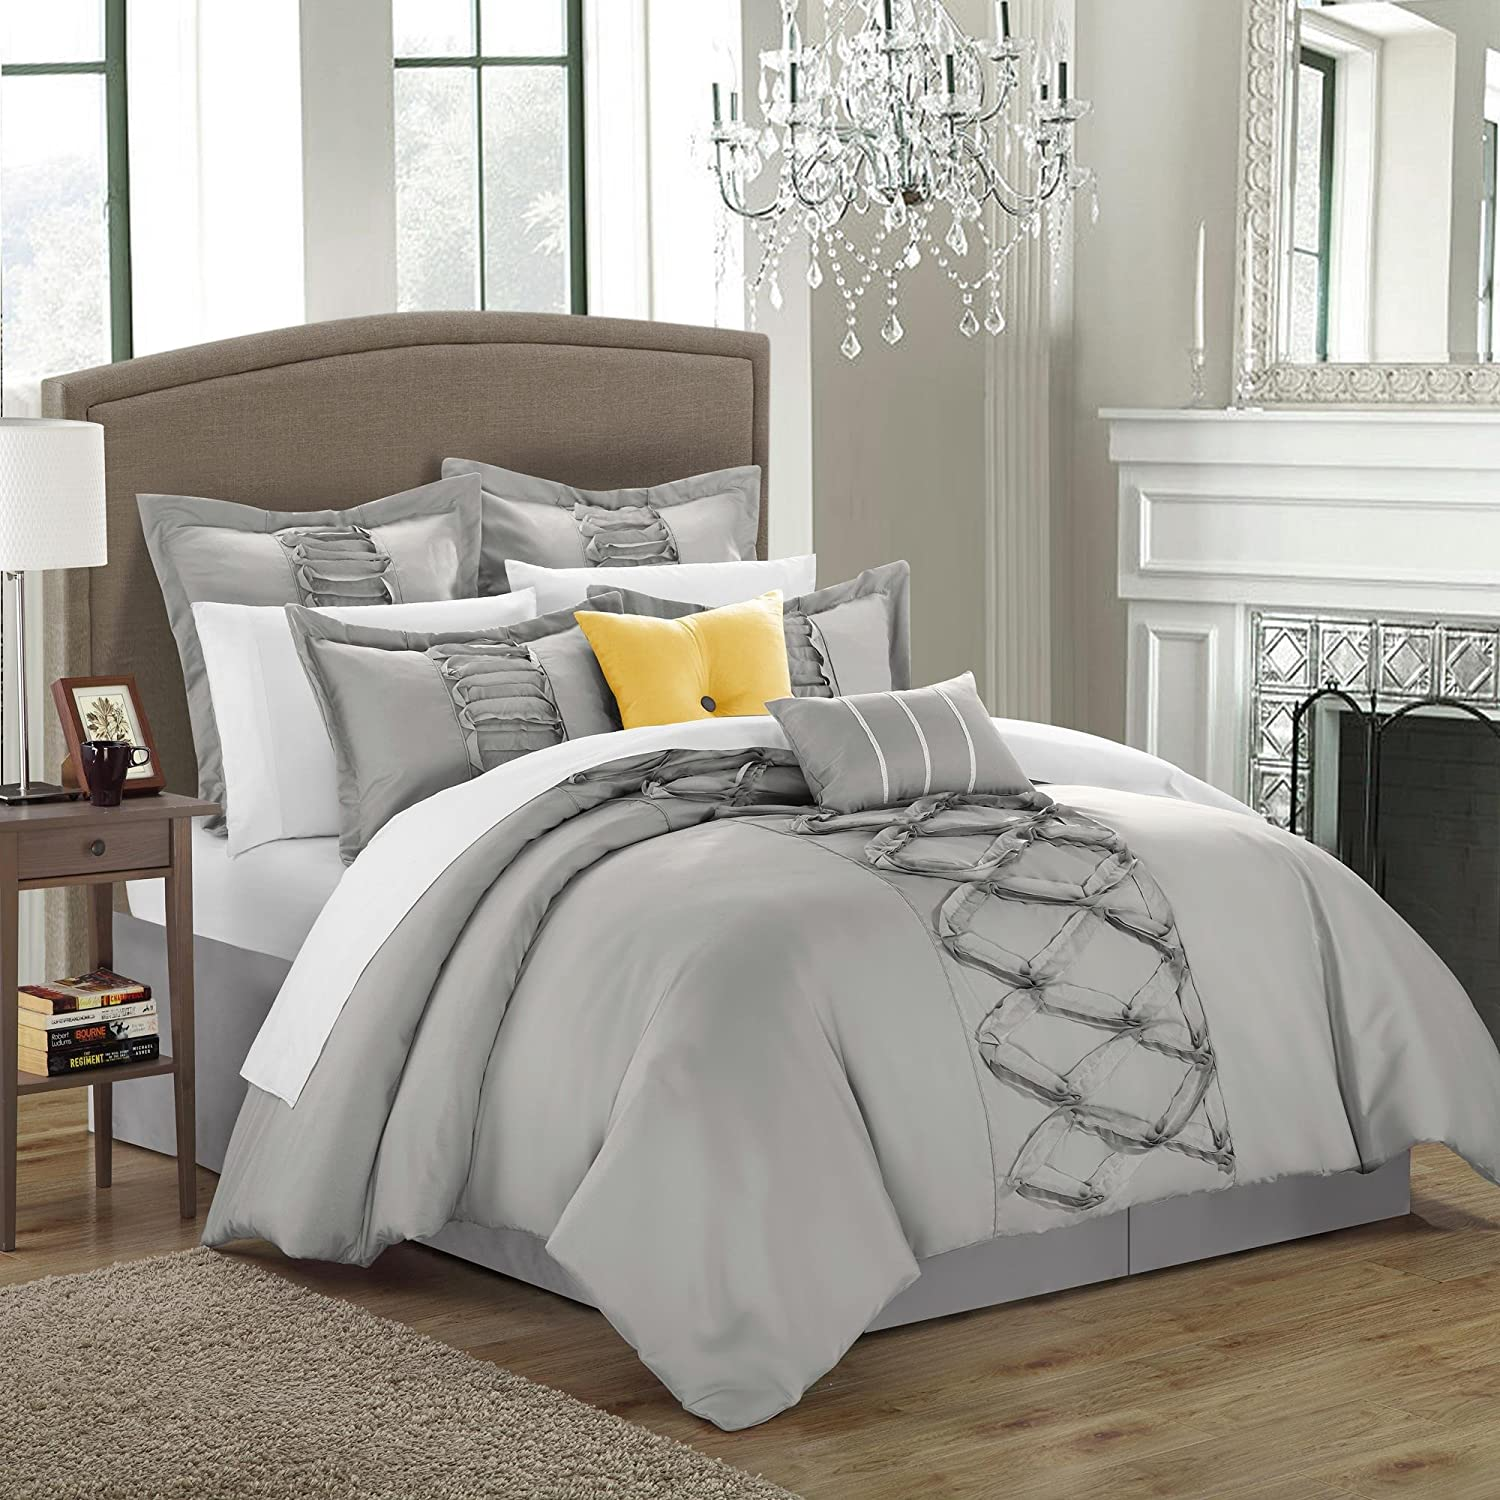 Amazon com ruth ruffled silver king 8 piece comforter bed in a bag set home kitchen